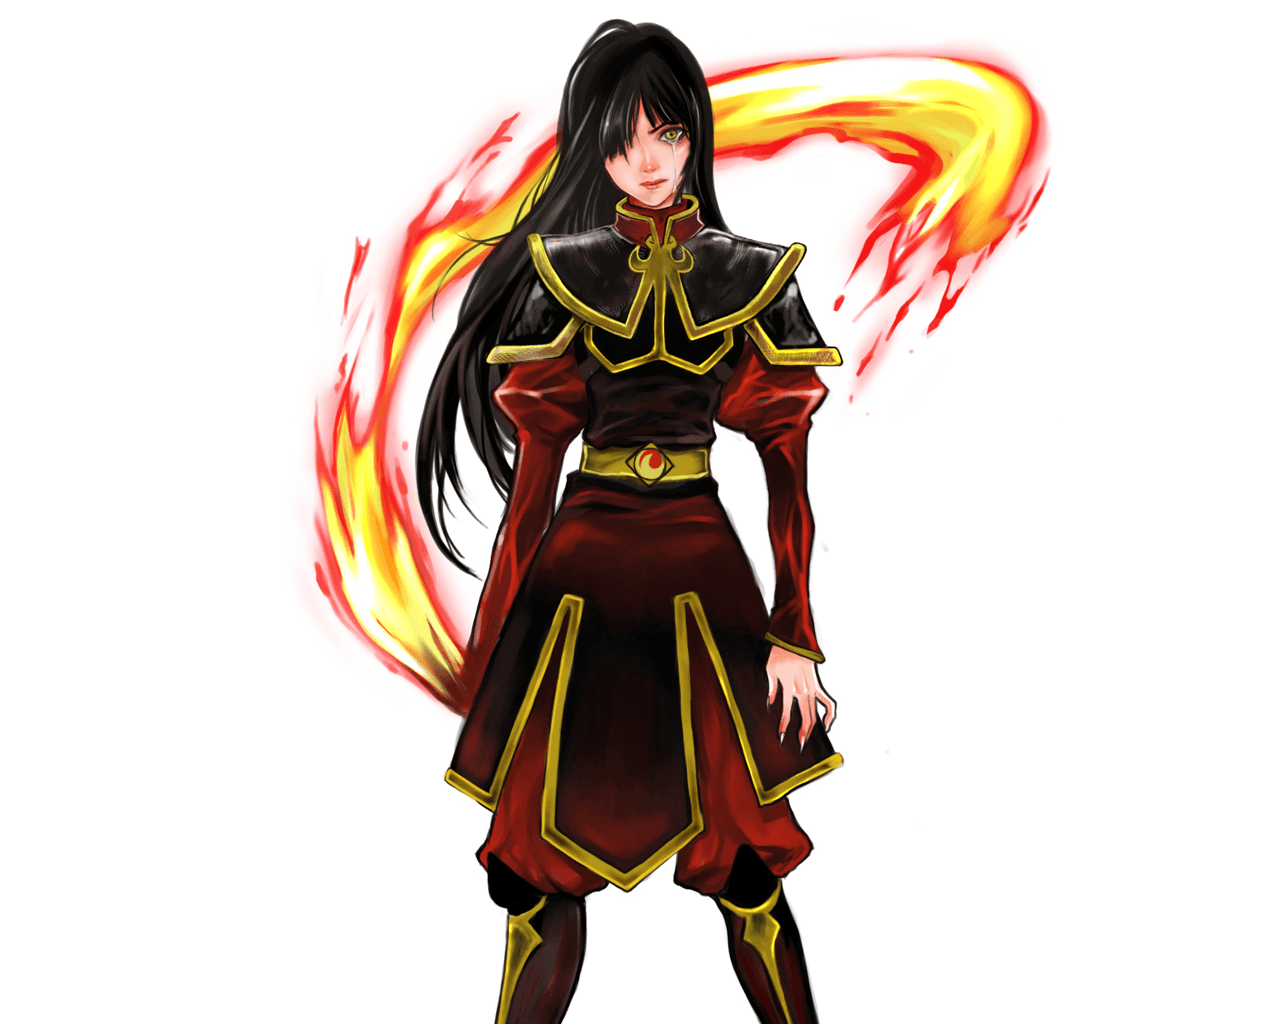 Avatar The Last Airbender Azula Crying Fire Sister White